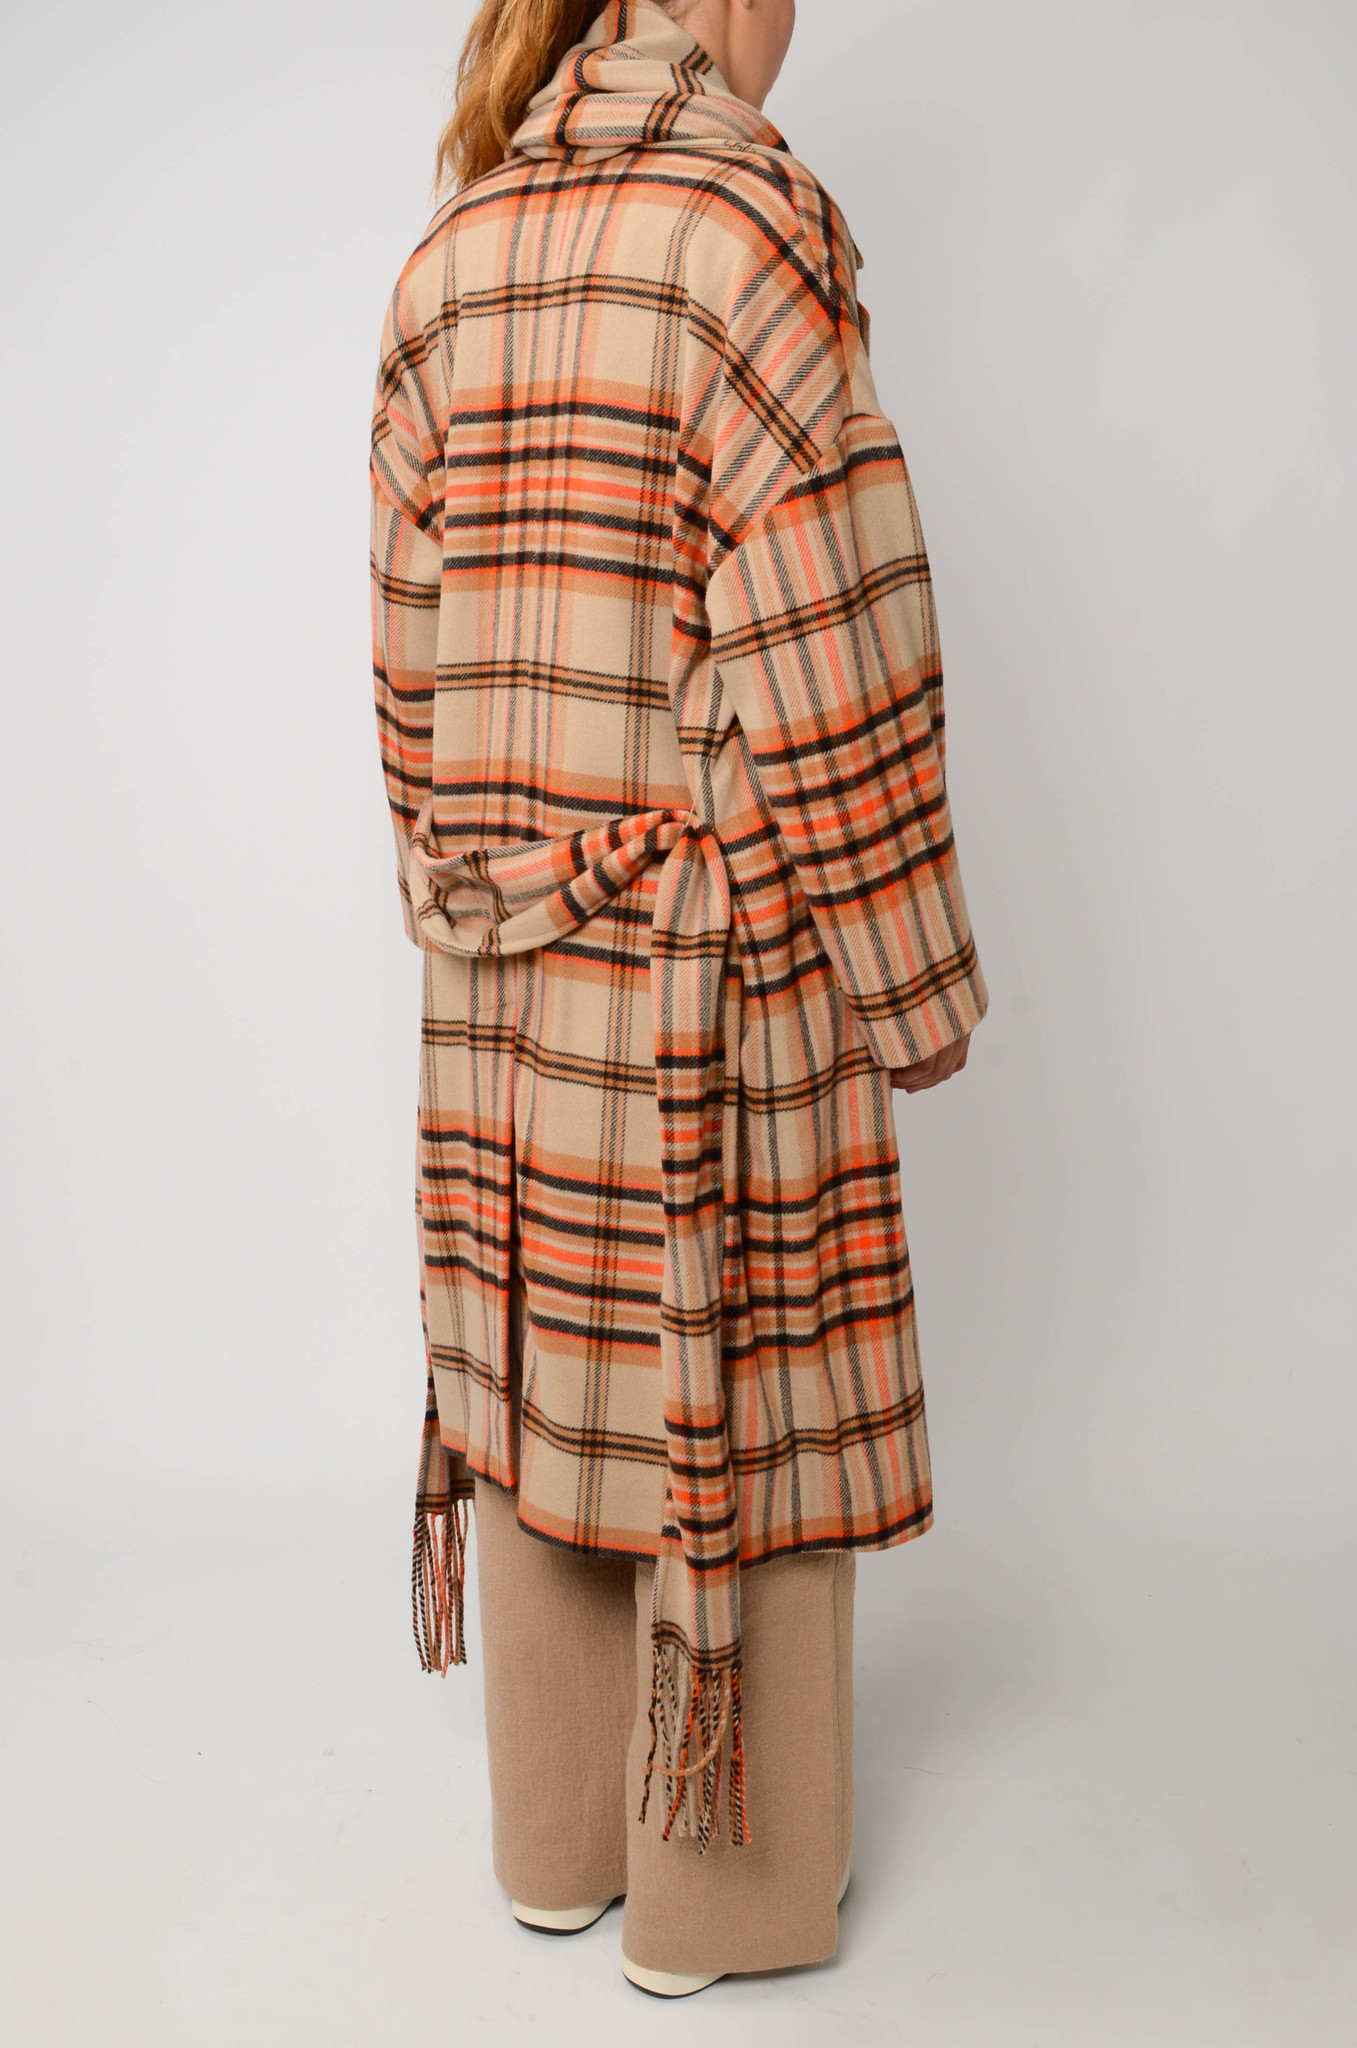 CHECKERED COAT IN ORANGE AND CAMEL-5